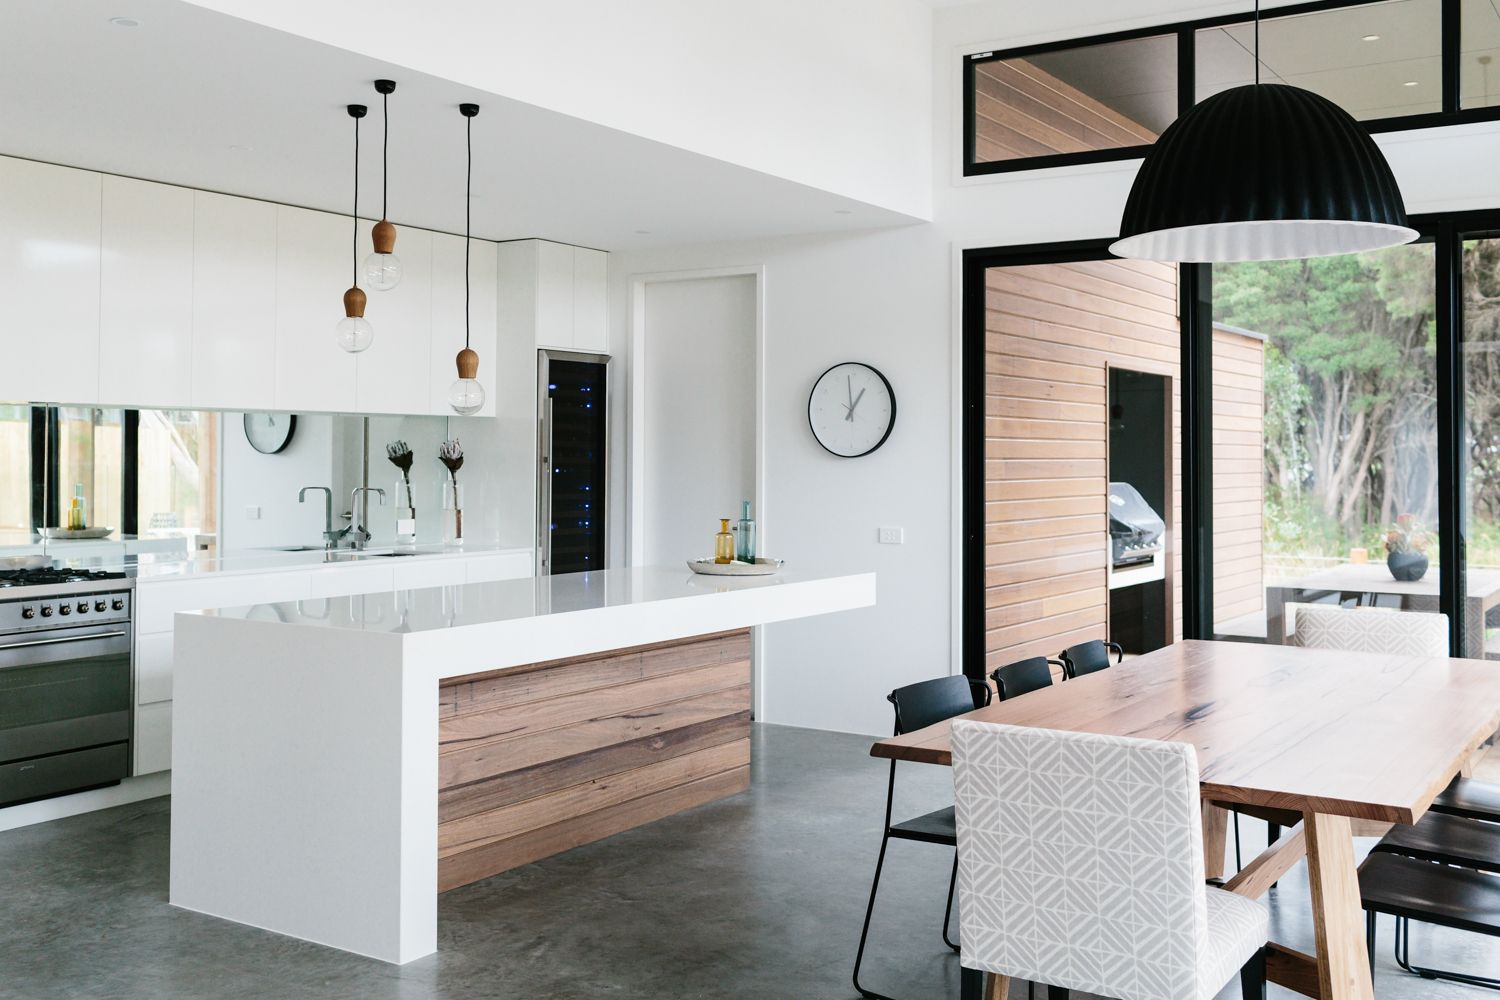 Minimalist kitchen white grey black and natural wood tones gorgeous with a scandinavian feel